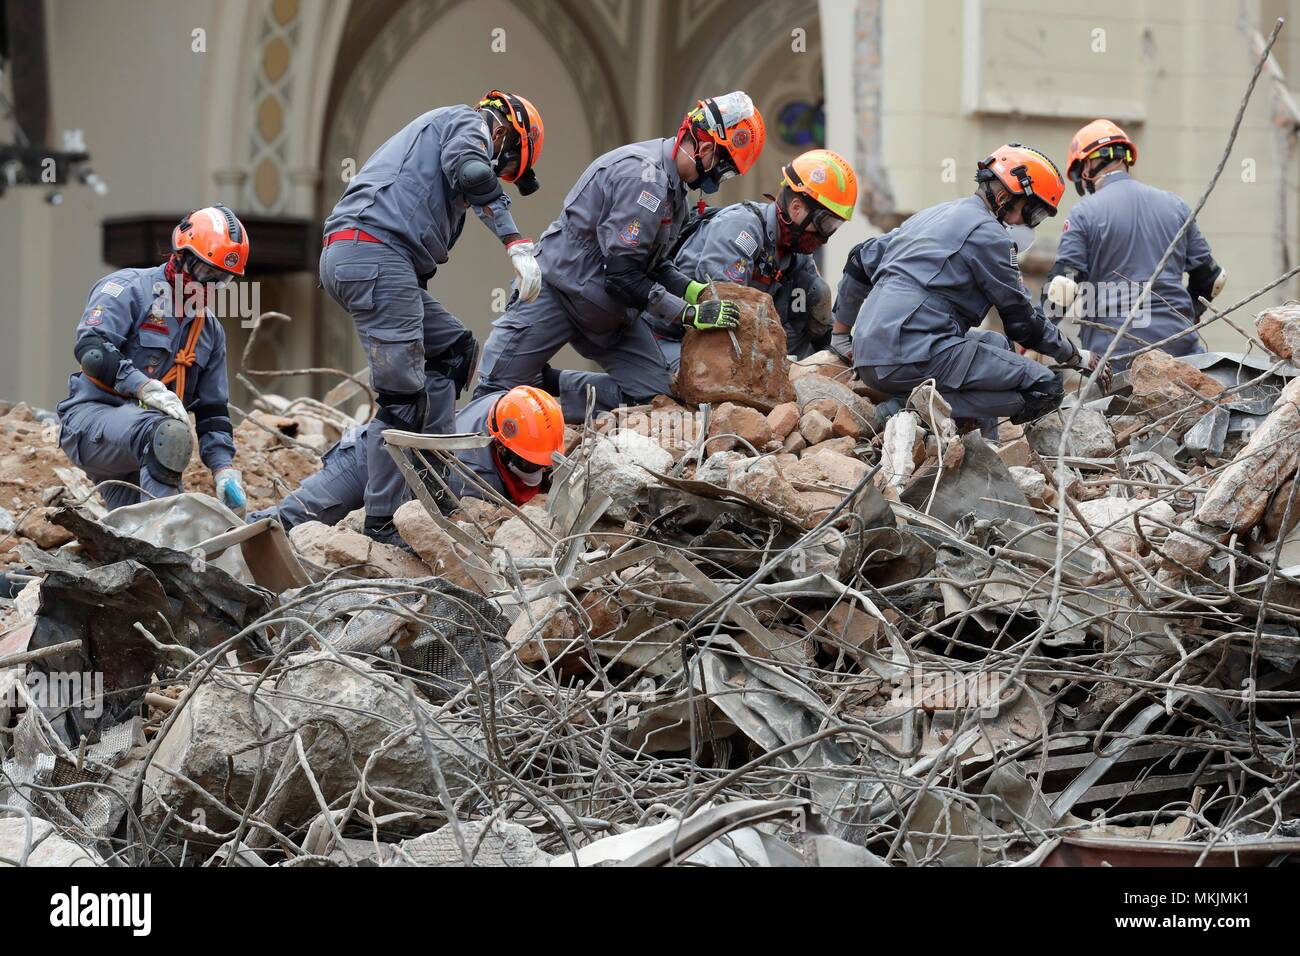 Rescue workers and firefighters work on the scene where a building caught in fire and collapsed in Sao Paolo, Brazil, 08 May 2018. Rescue teams are carrying on the search of victims of the Sao Paulo building that collapsed early 01 May after being consumed by flames, according to the Sao Paulo Fire Department, who raised the number of missing persons to seven.EFE/ Sebastiao Moreira - Stock Image